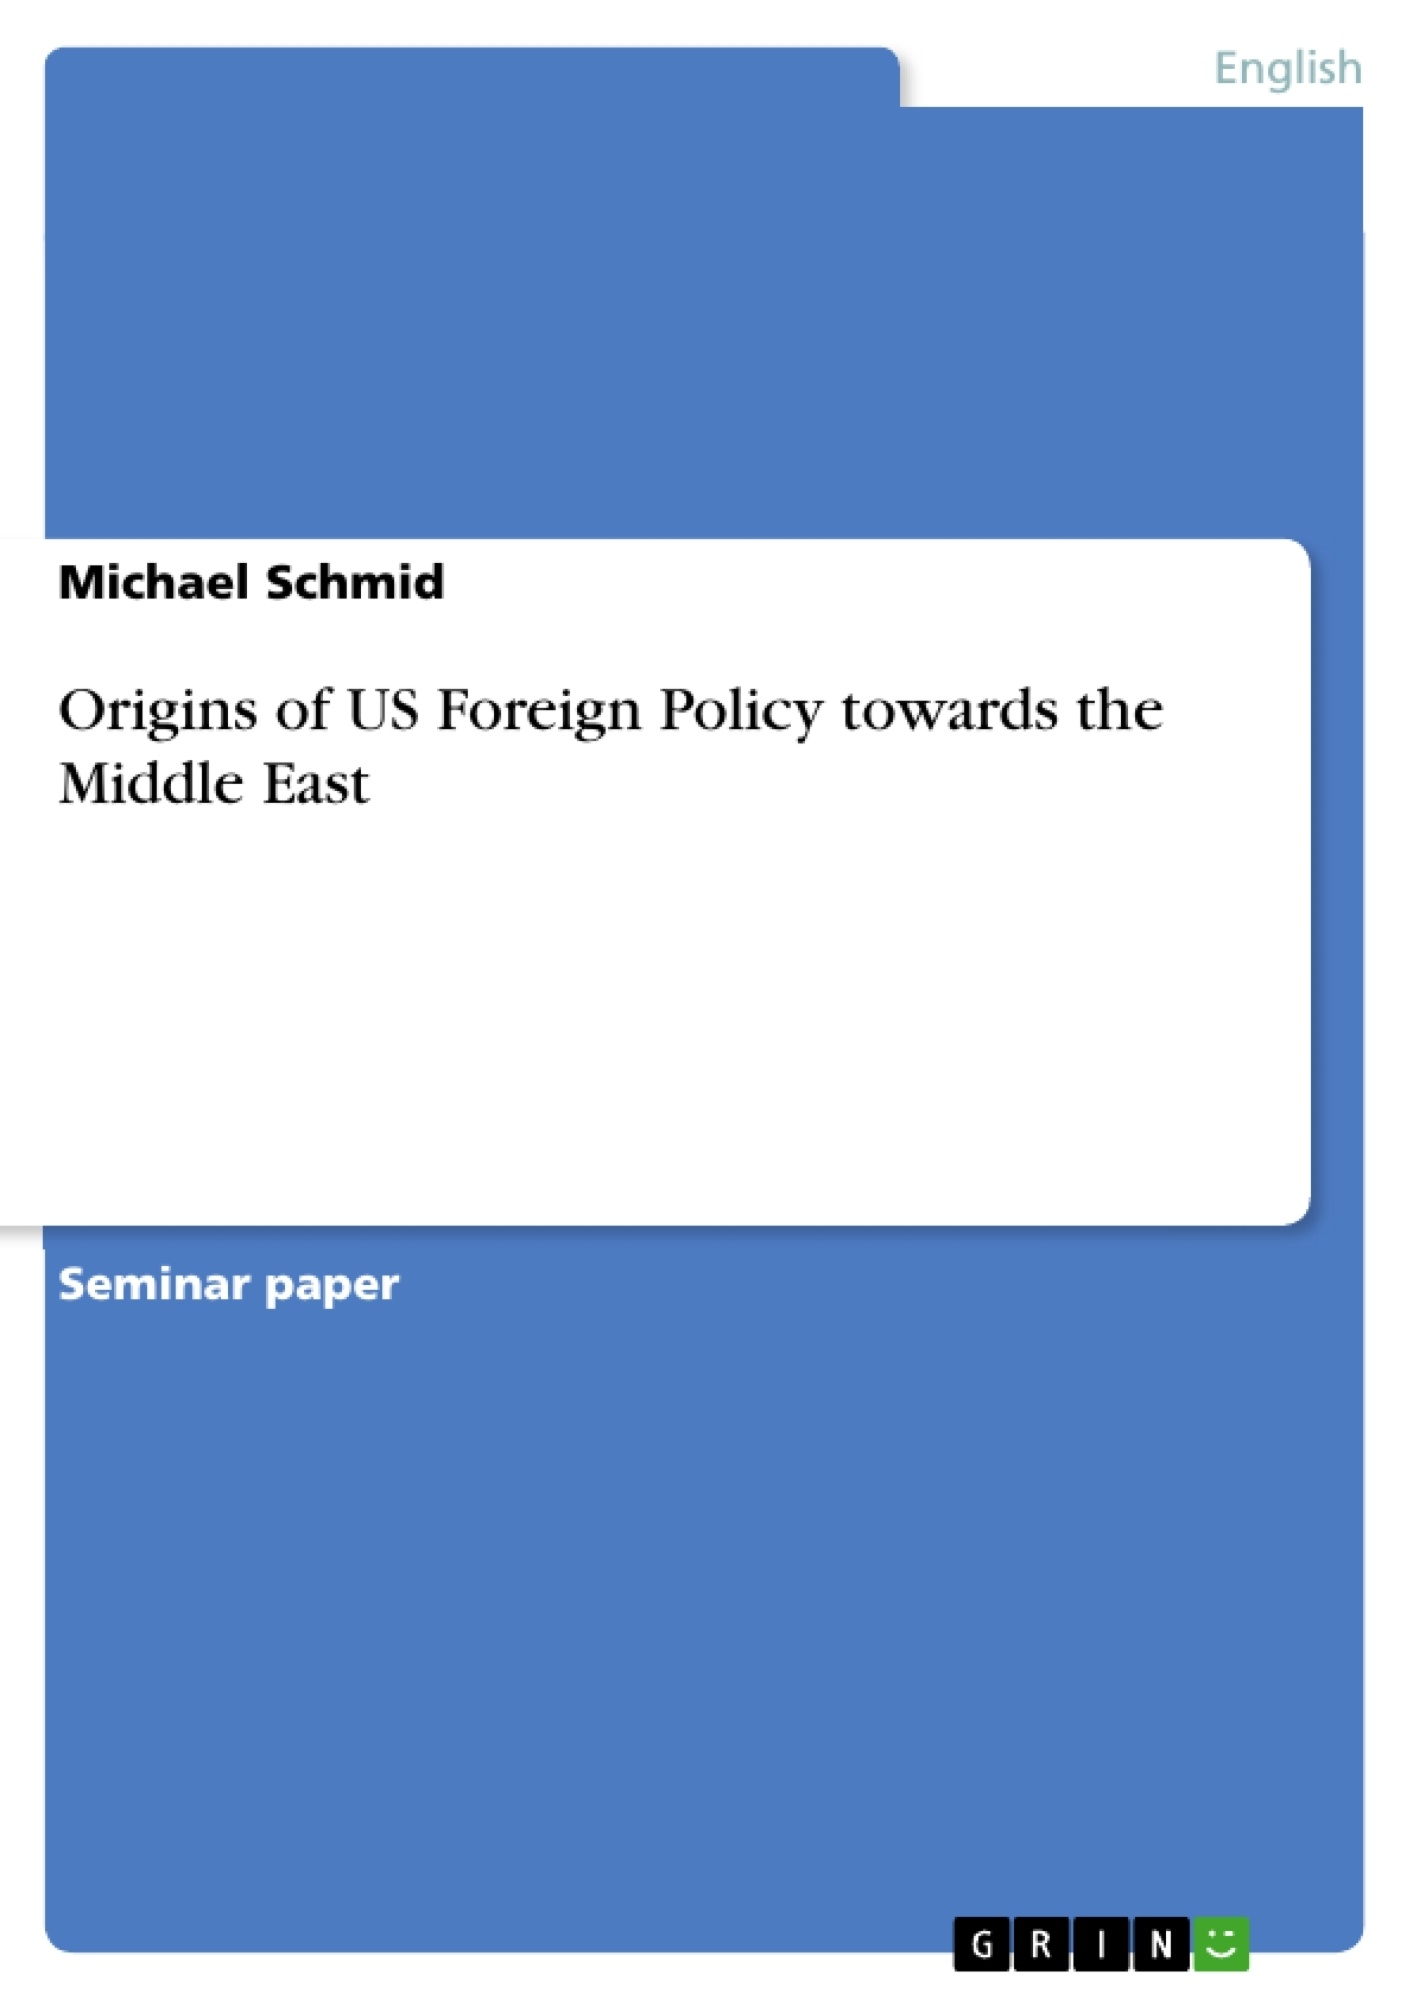 Title: Origins of US Foreign Policy towards the Middle East